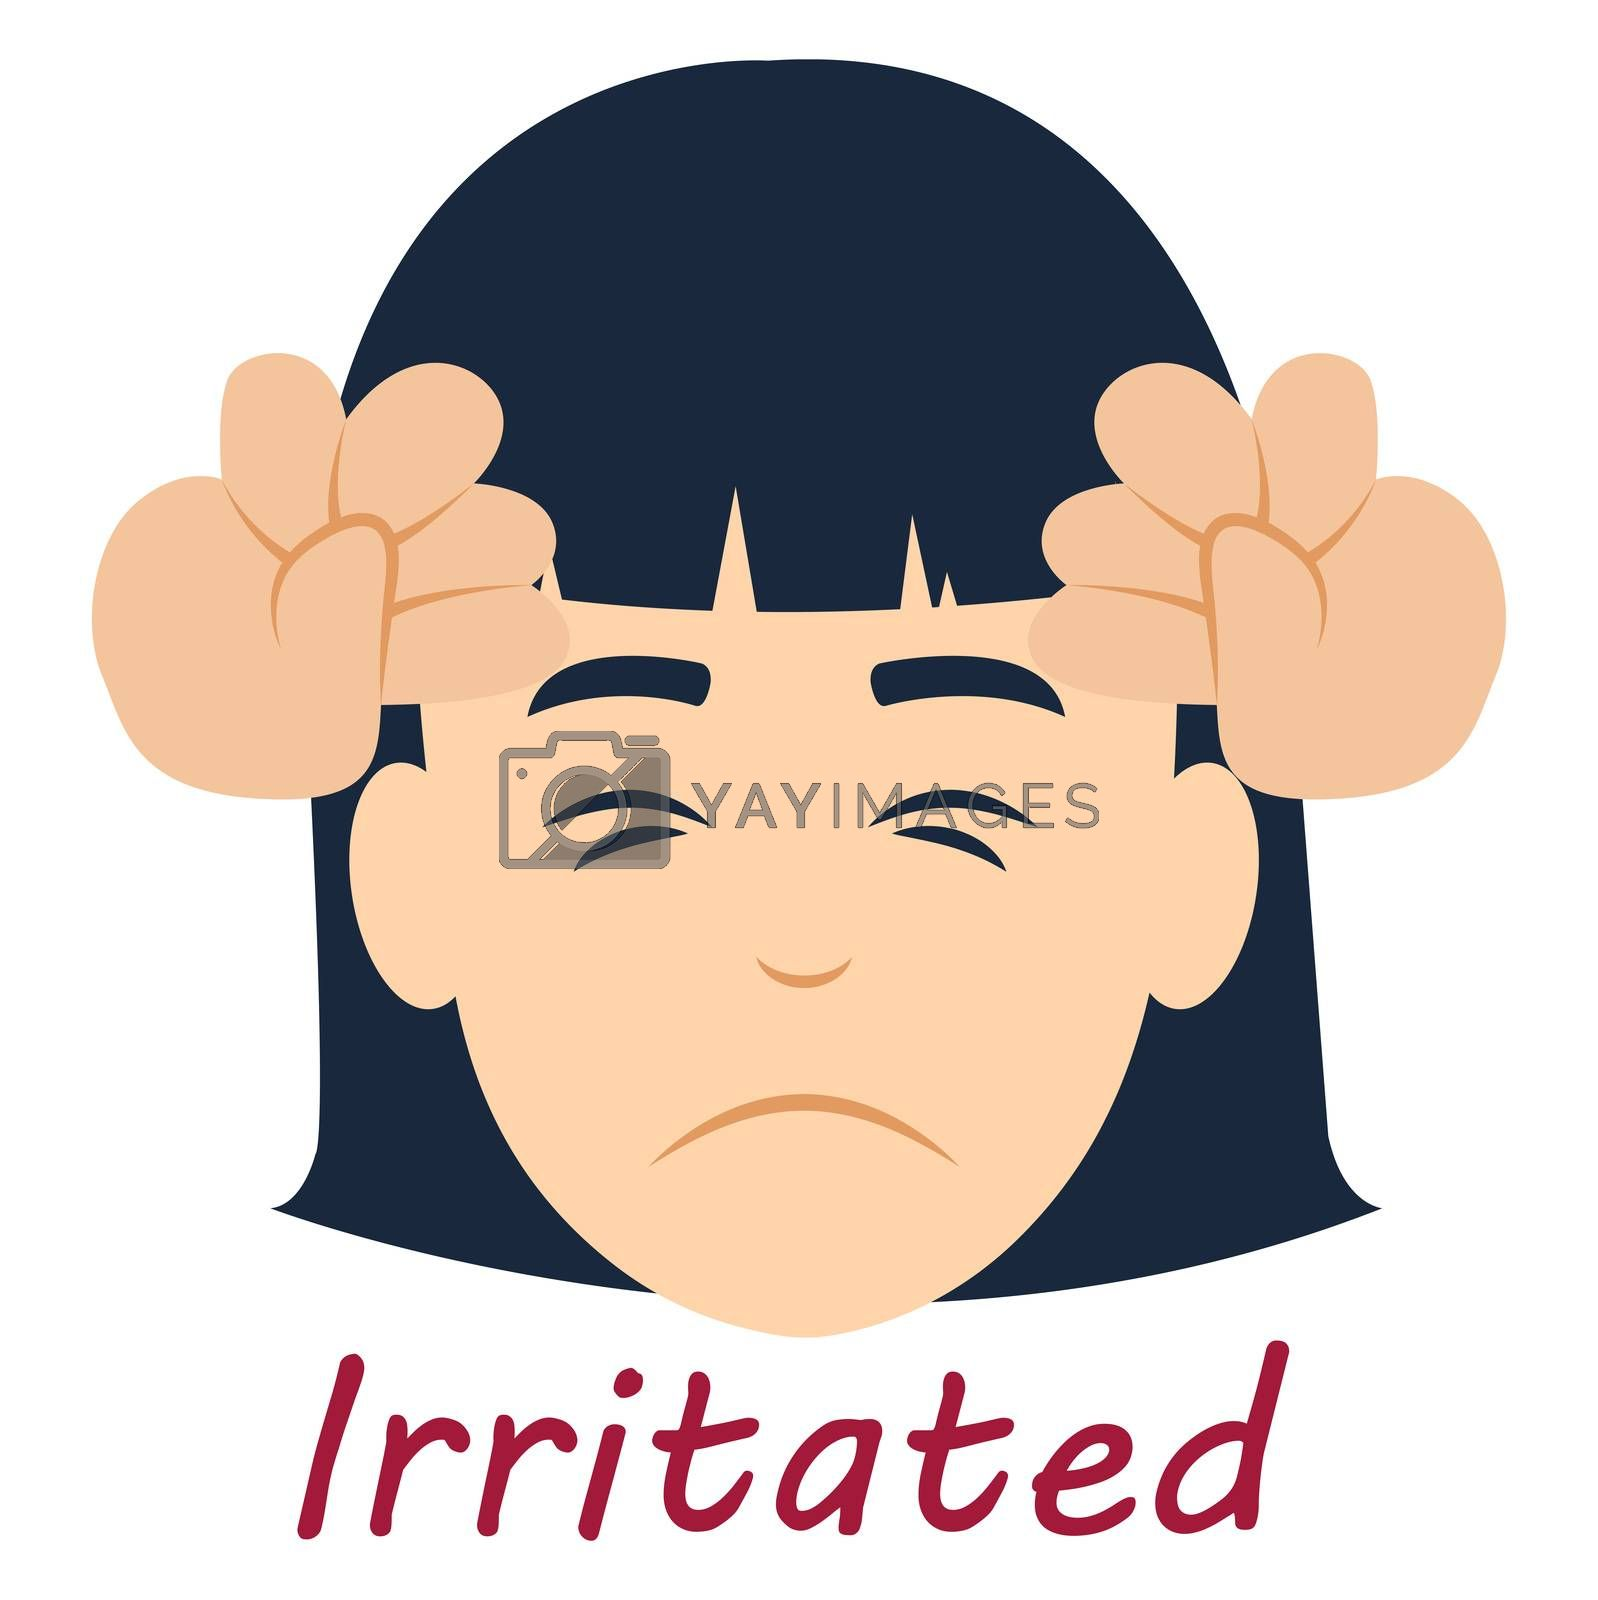 Girl irritated, illustration, vector on white background